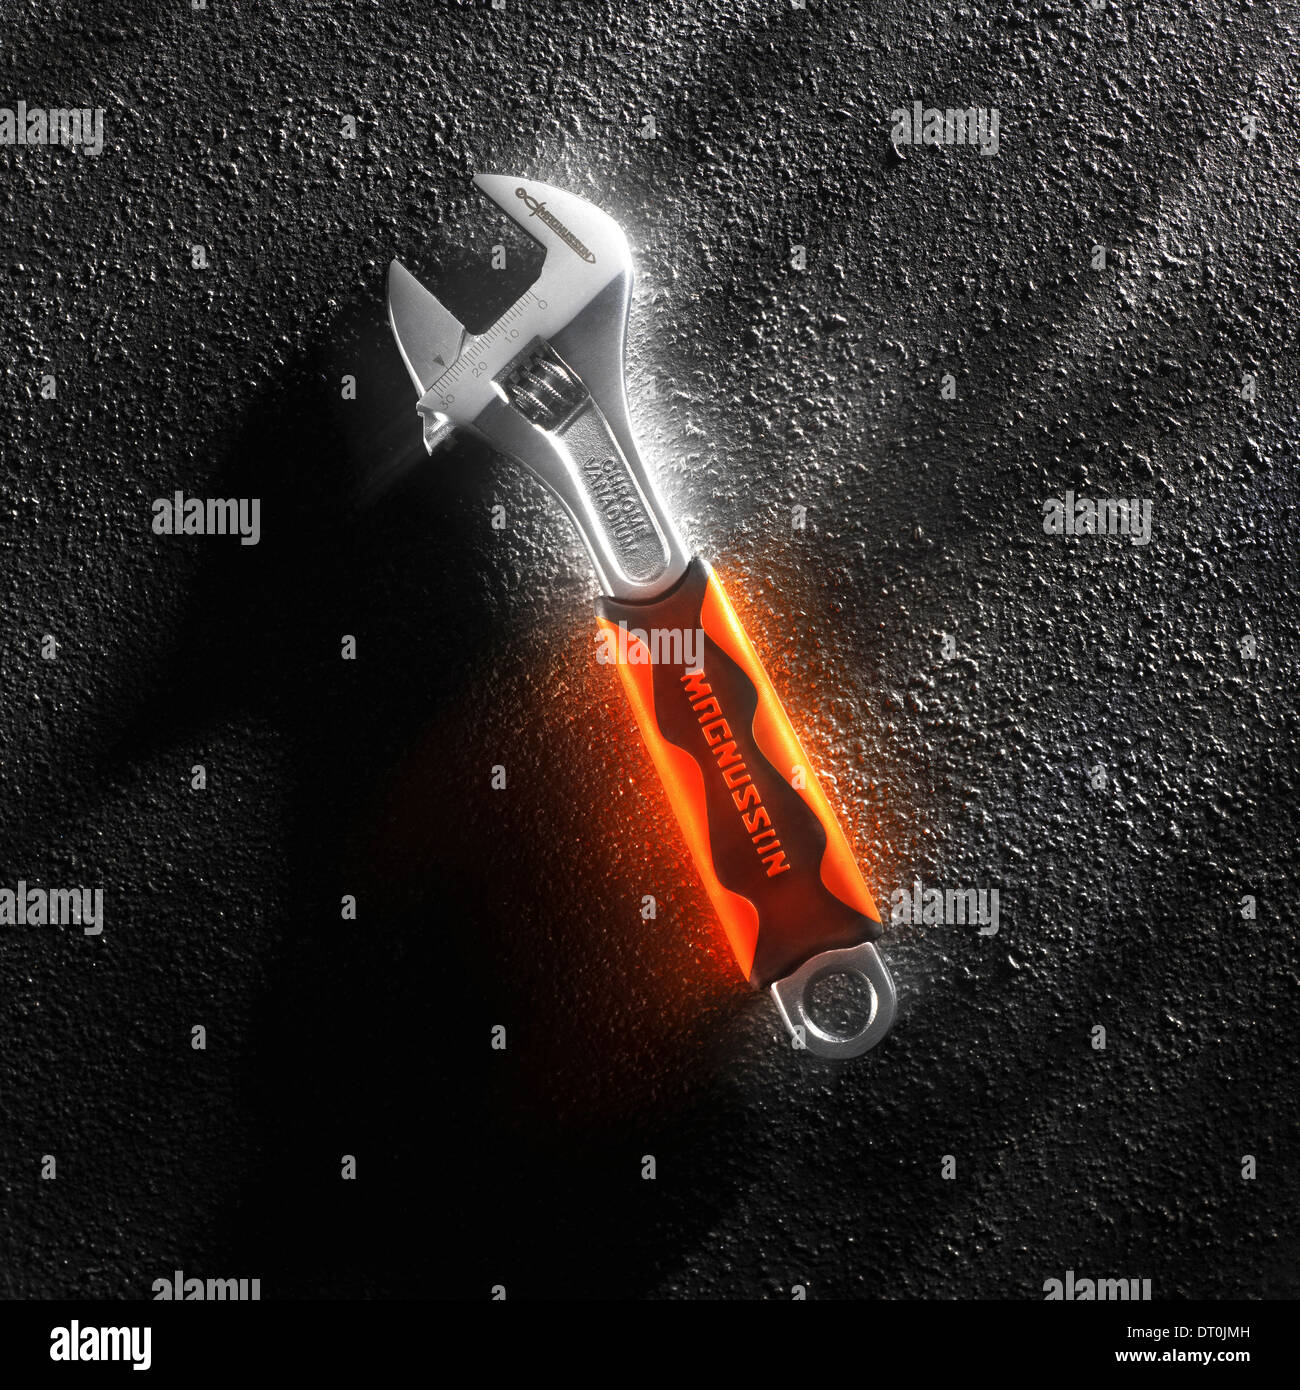 Spanner - Stock Image